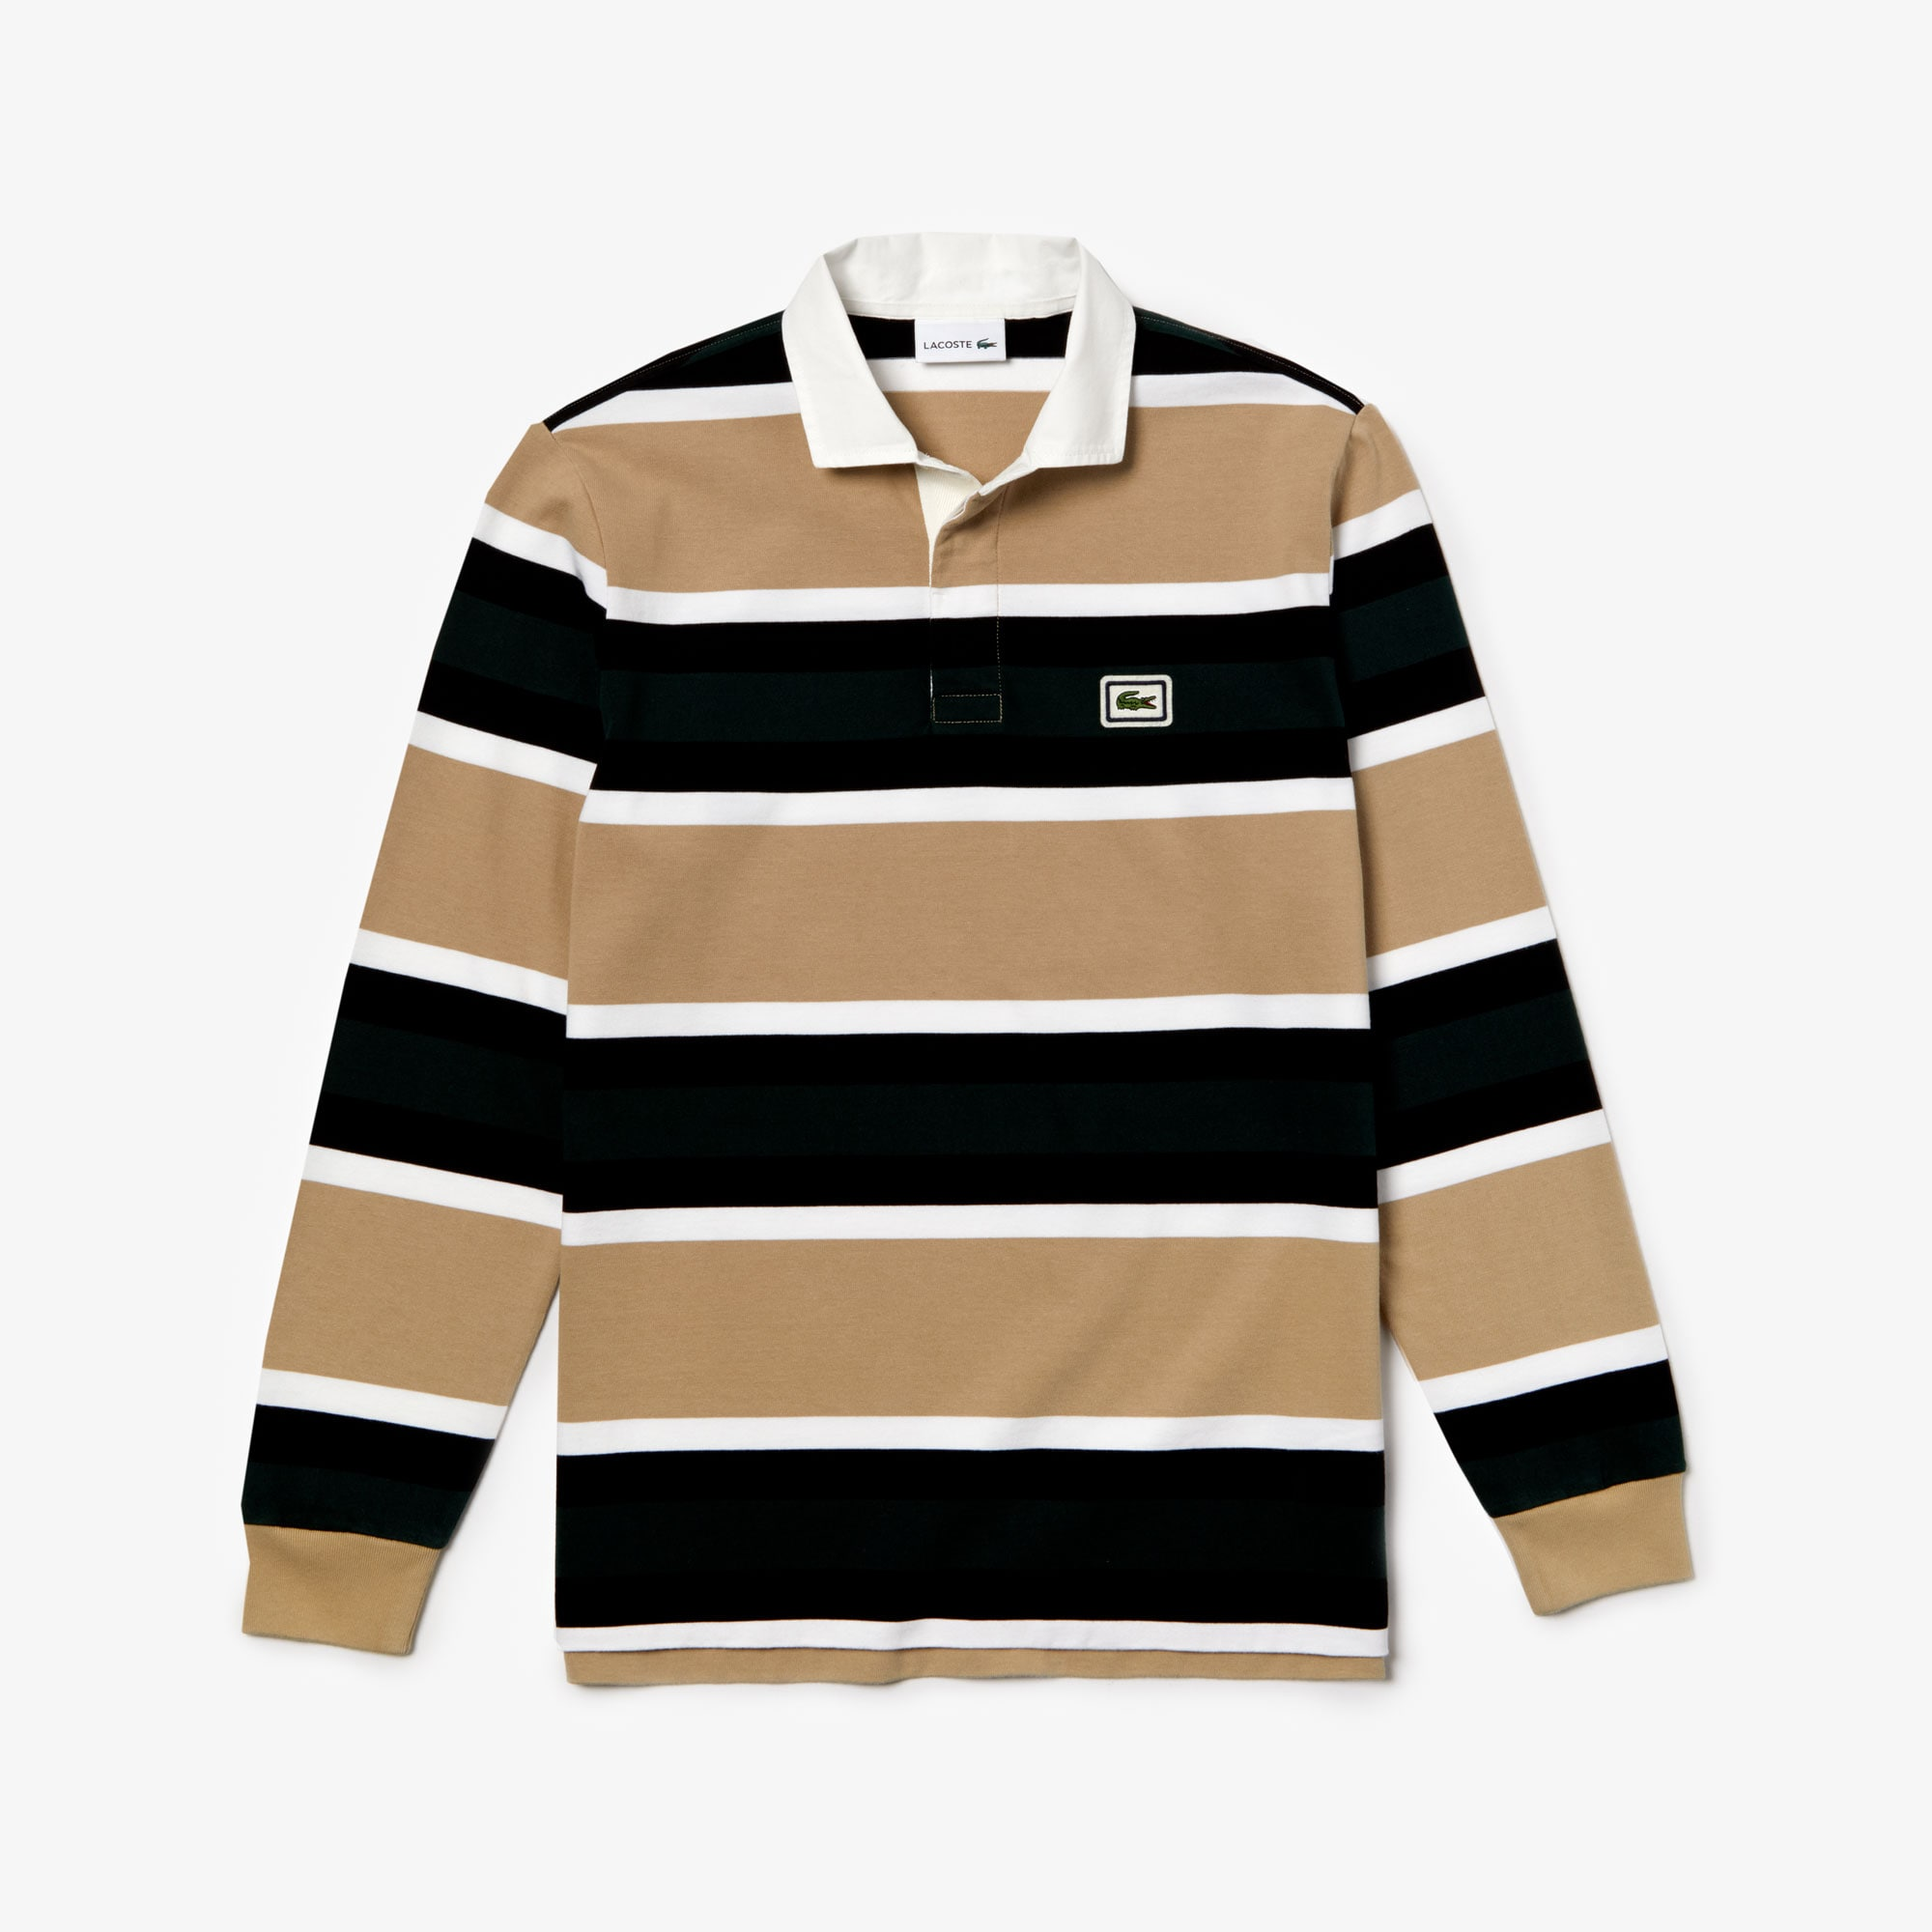 Lacoste Men/'s New Striped Thick Cotton Jersey Rugby Polo Shirt Beige